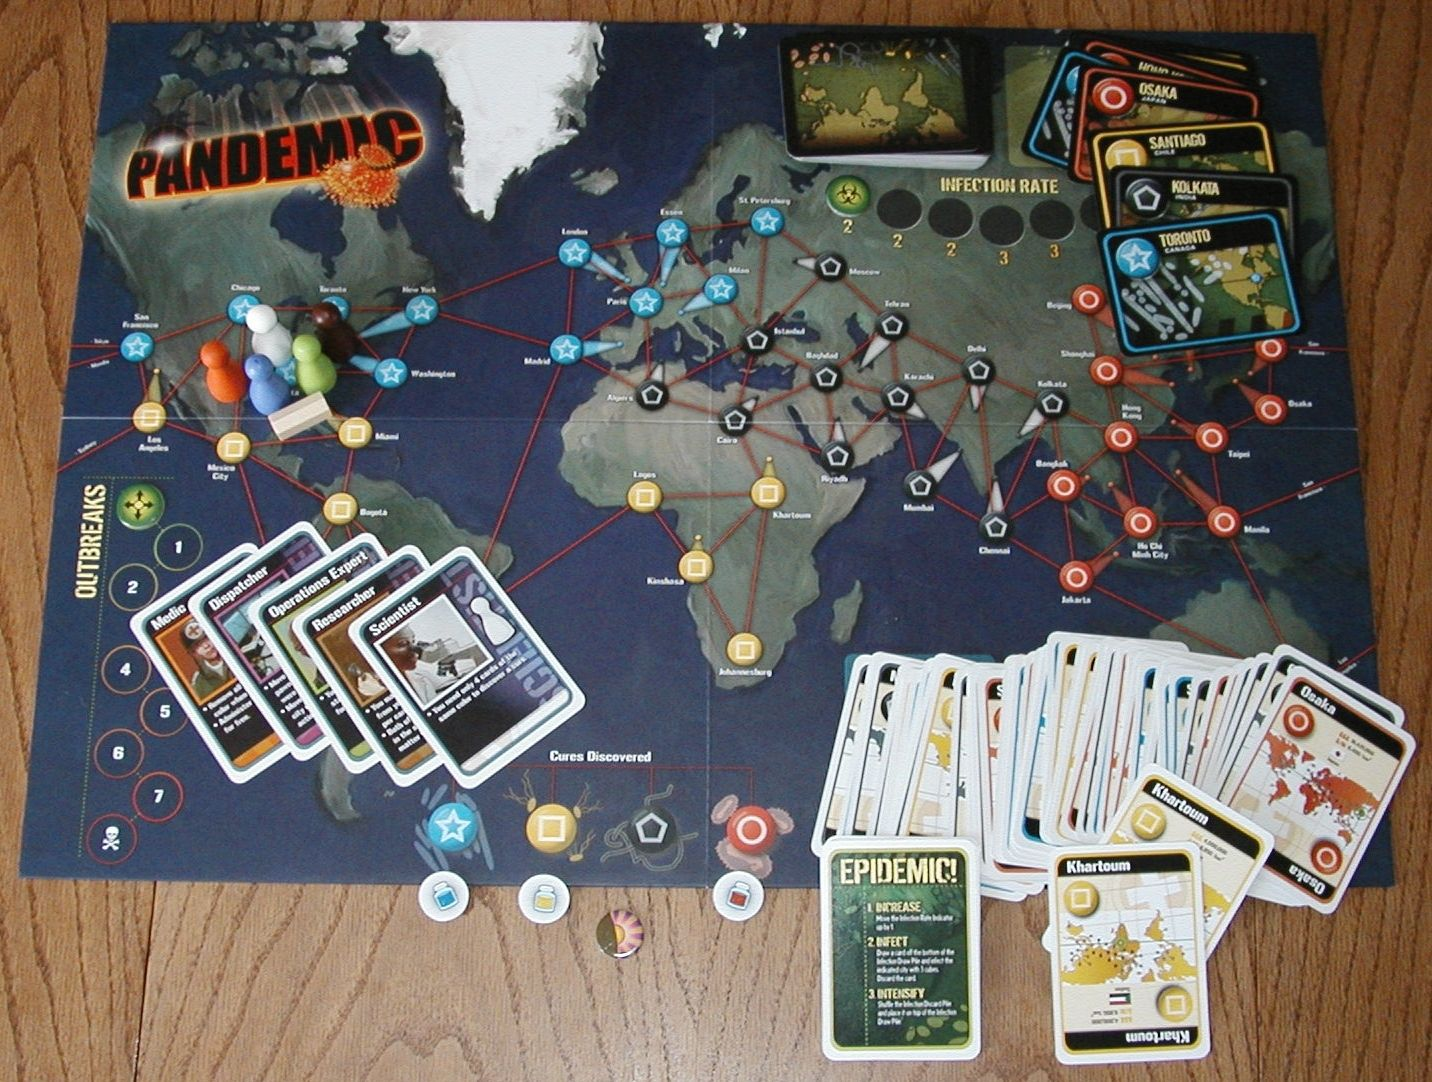 Pin on Games of the Table Top Variety